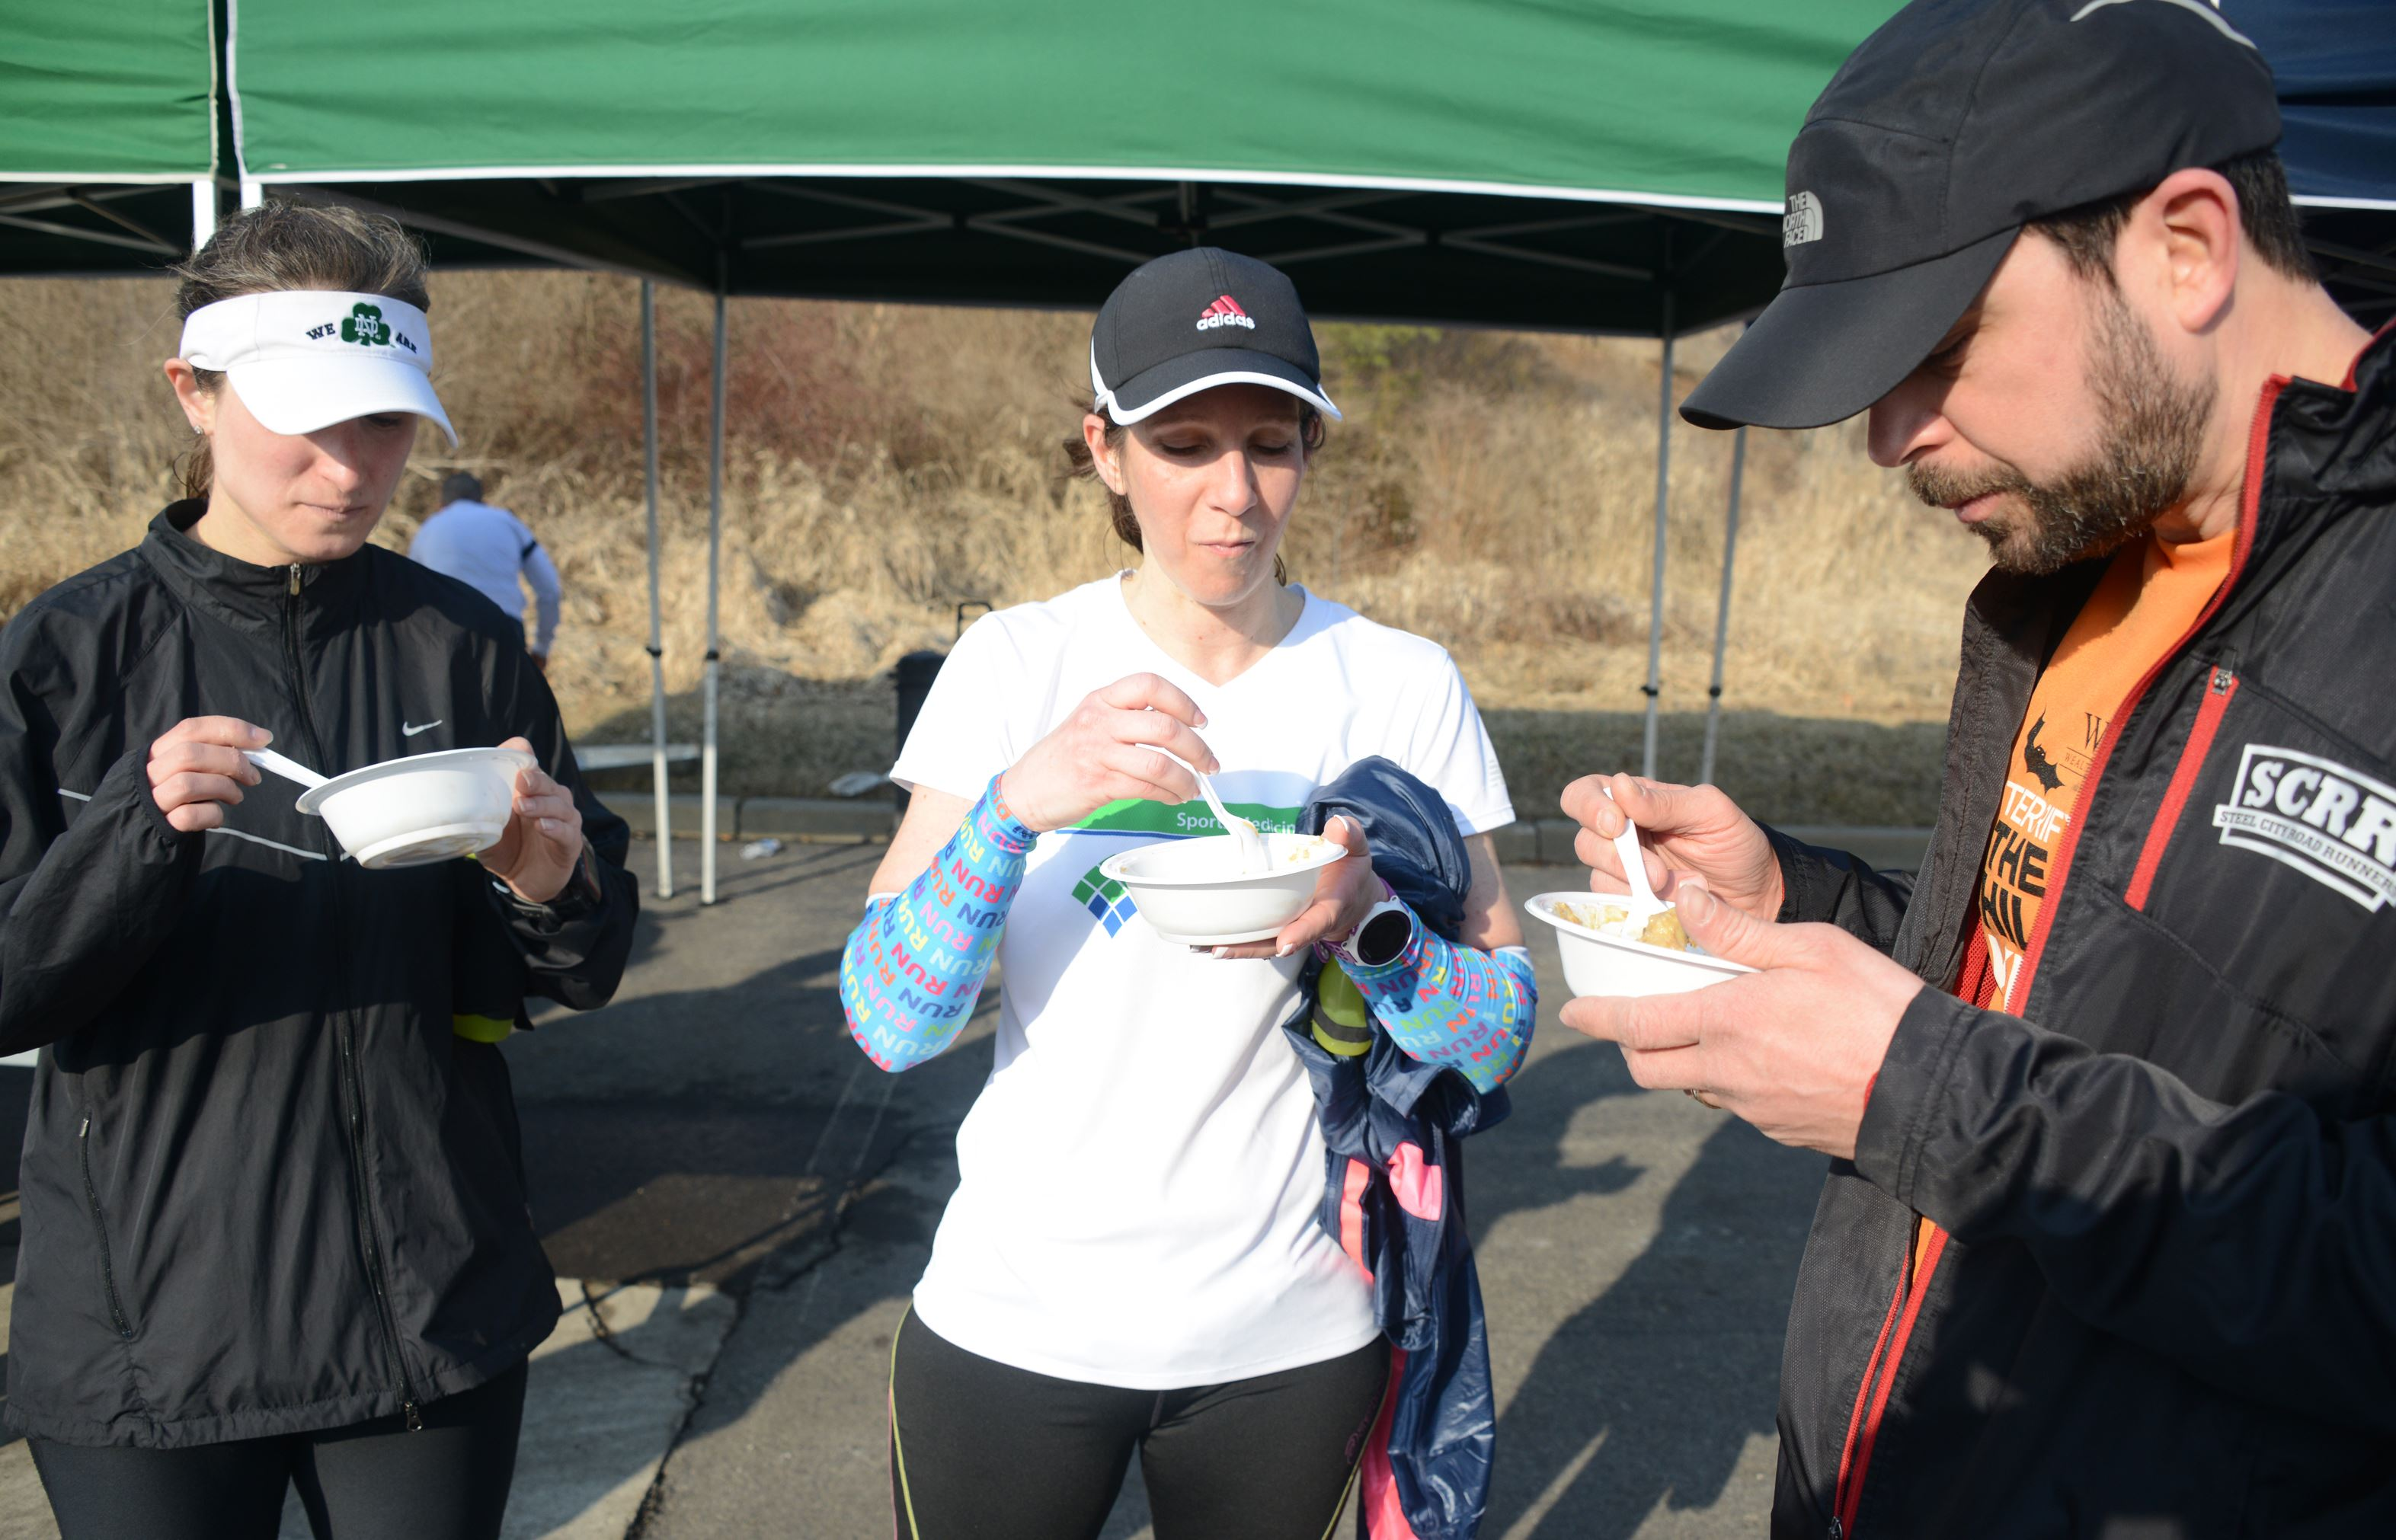 26.2 Food: Butternut squash oatmeal 03 Jennifer Garczyk of Squirrel Hill, Francie Sukitch of Moon and Steve Gaghan of Mars taste a bowl of butternut squash oatmeal prepared by Pittsburgh Marathon dietitian Nick Fischer at the Steel City Runners group run on the Montour Trail in Moon.